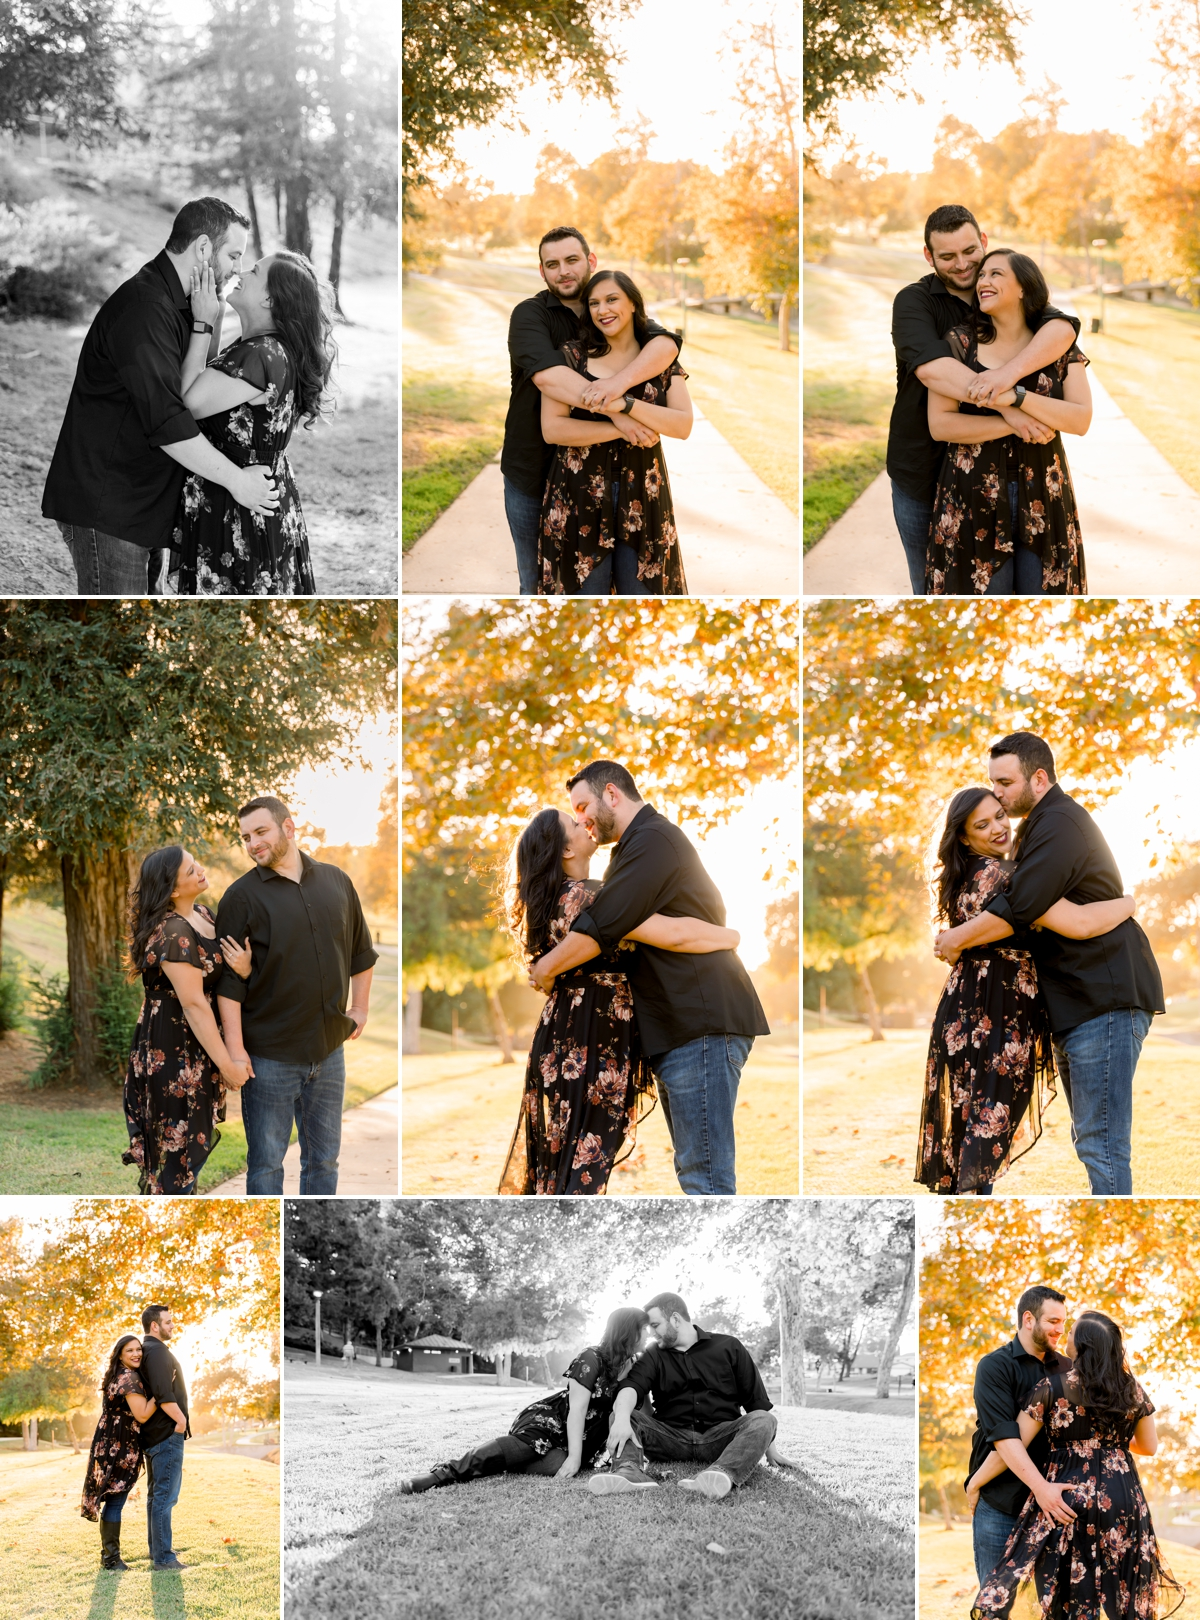 affordable-wedding-photography-orange-county-la-mirada-creek-park-engagement-session-shy-heart-studios-2